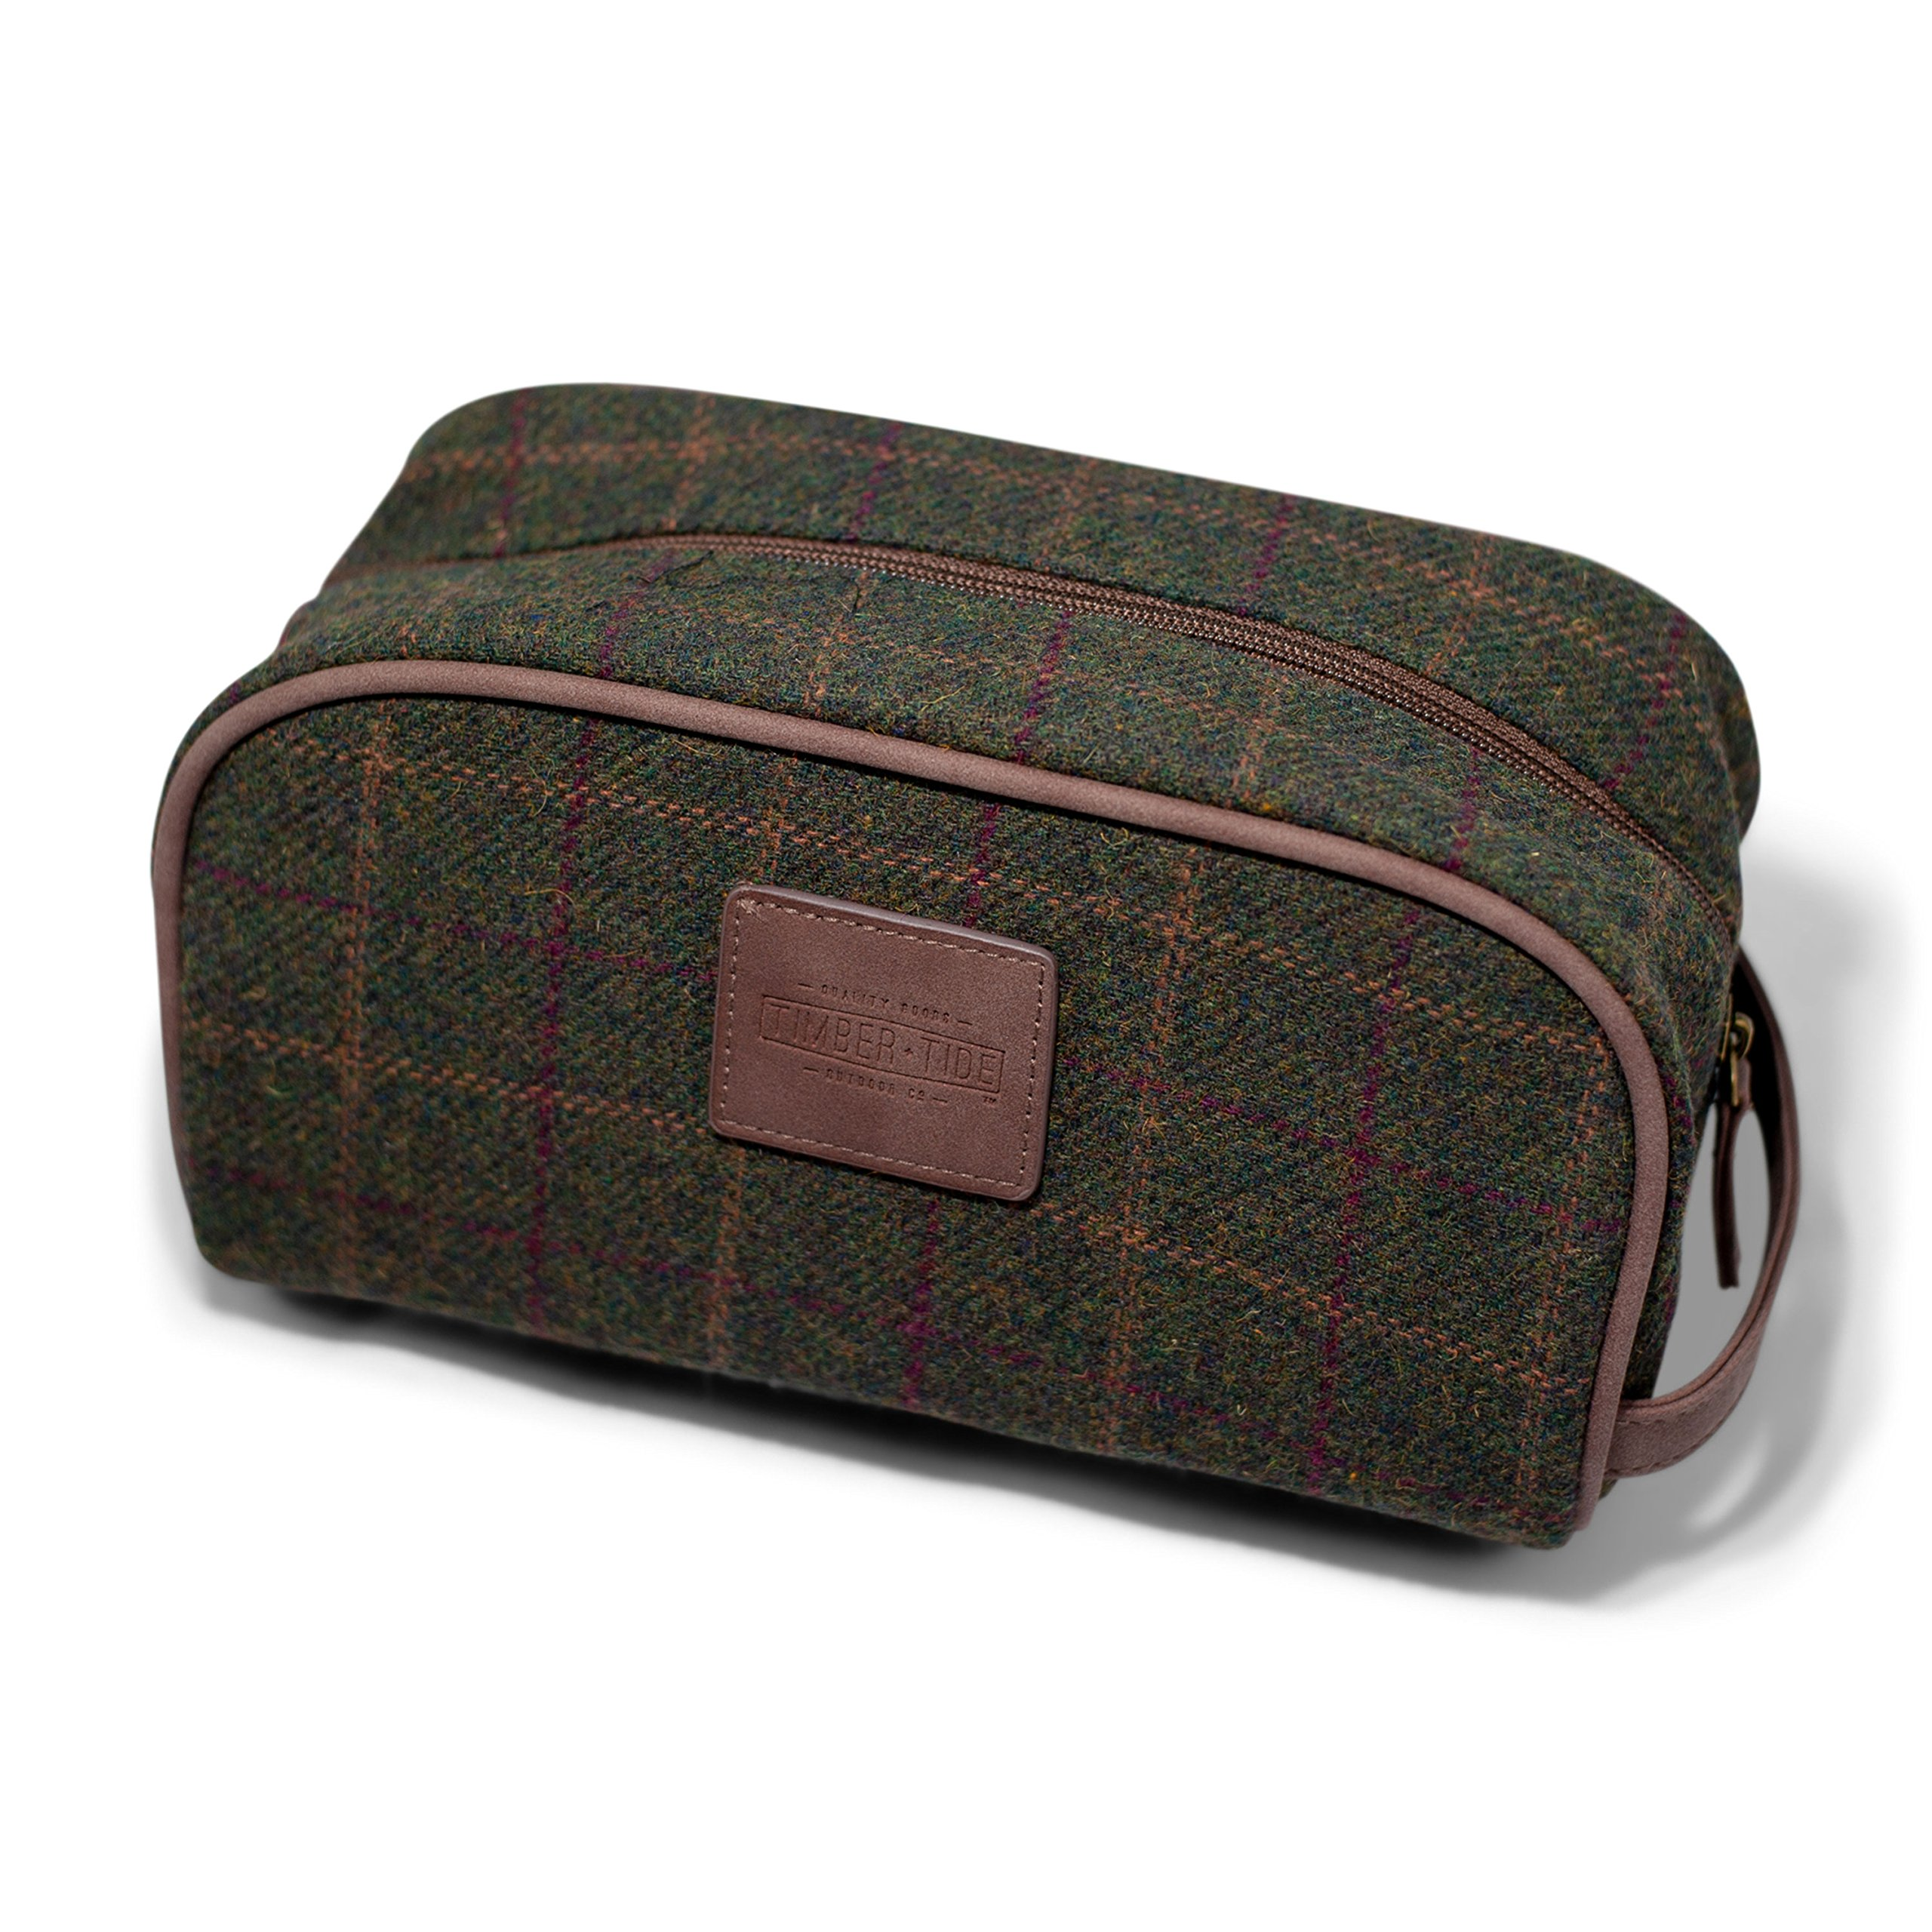 Luxury Toiletry Organizer Bag - Dopp Kit for Travel, Bathroom, Shower, and Shaving - Vintage Gentleman Plaid Exterior with Waterproof Interior - Extra Interior Zippered Pocket for More Storage by Timber and Tide